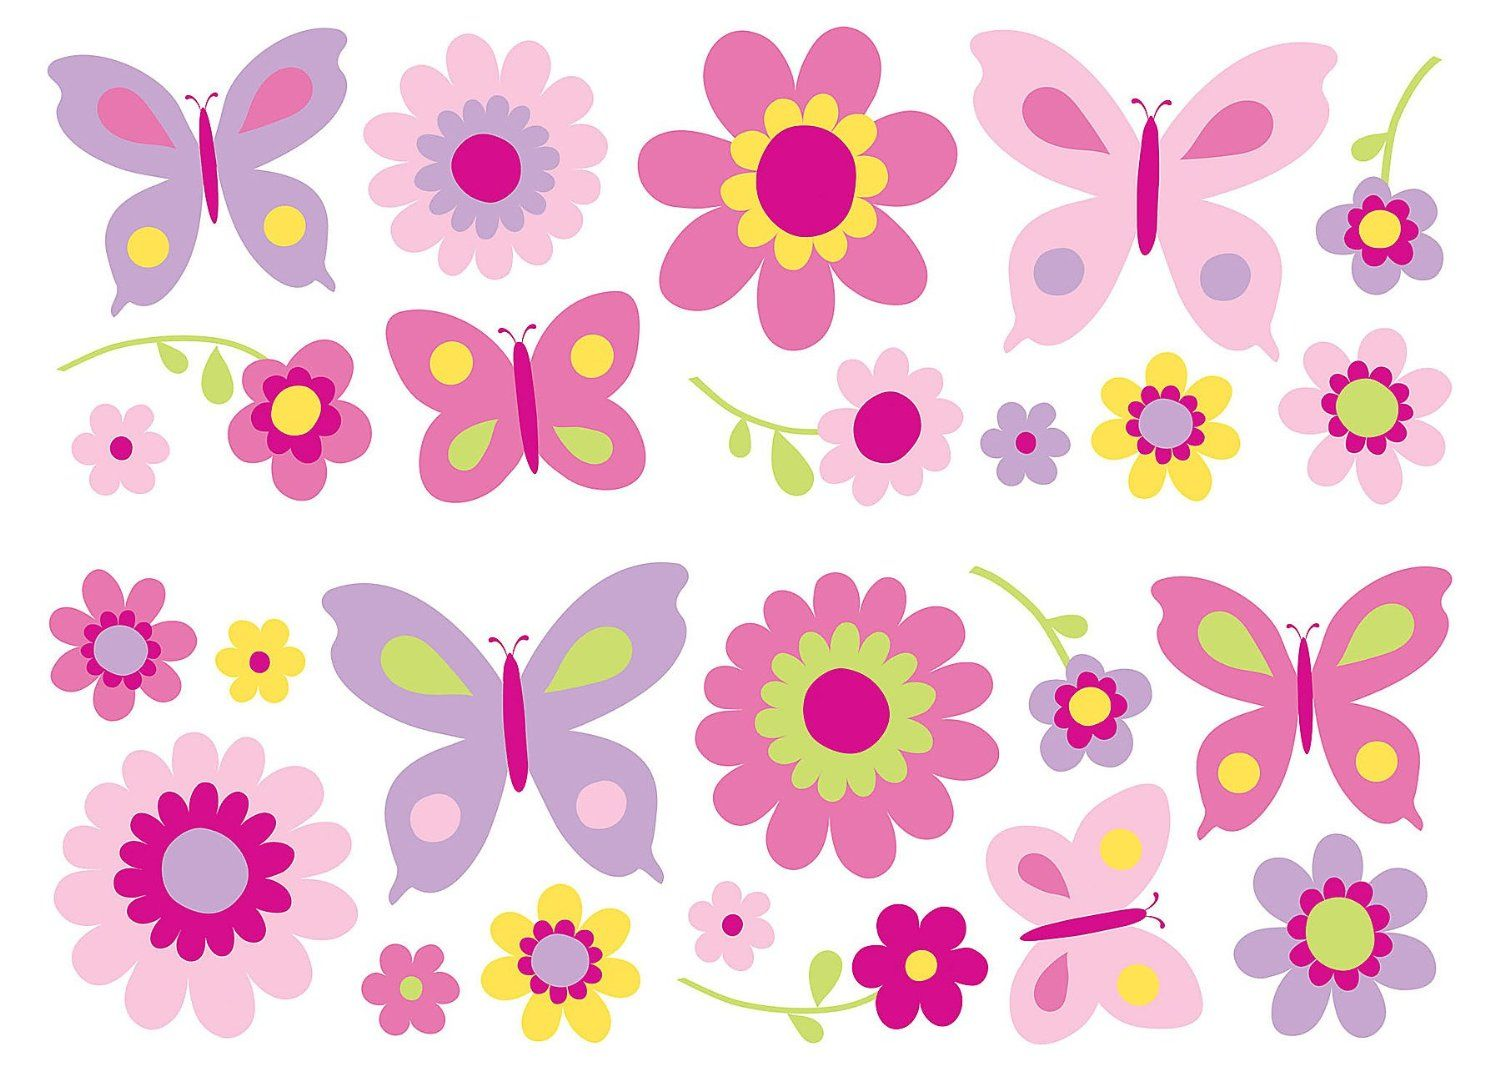 fun4walls sa30149 flowers and butterflies wall stickers fun4walls sa30149 flowers and butterflies wall stickers decorative wall appliques amazon com